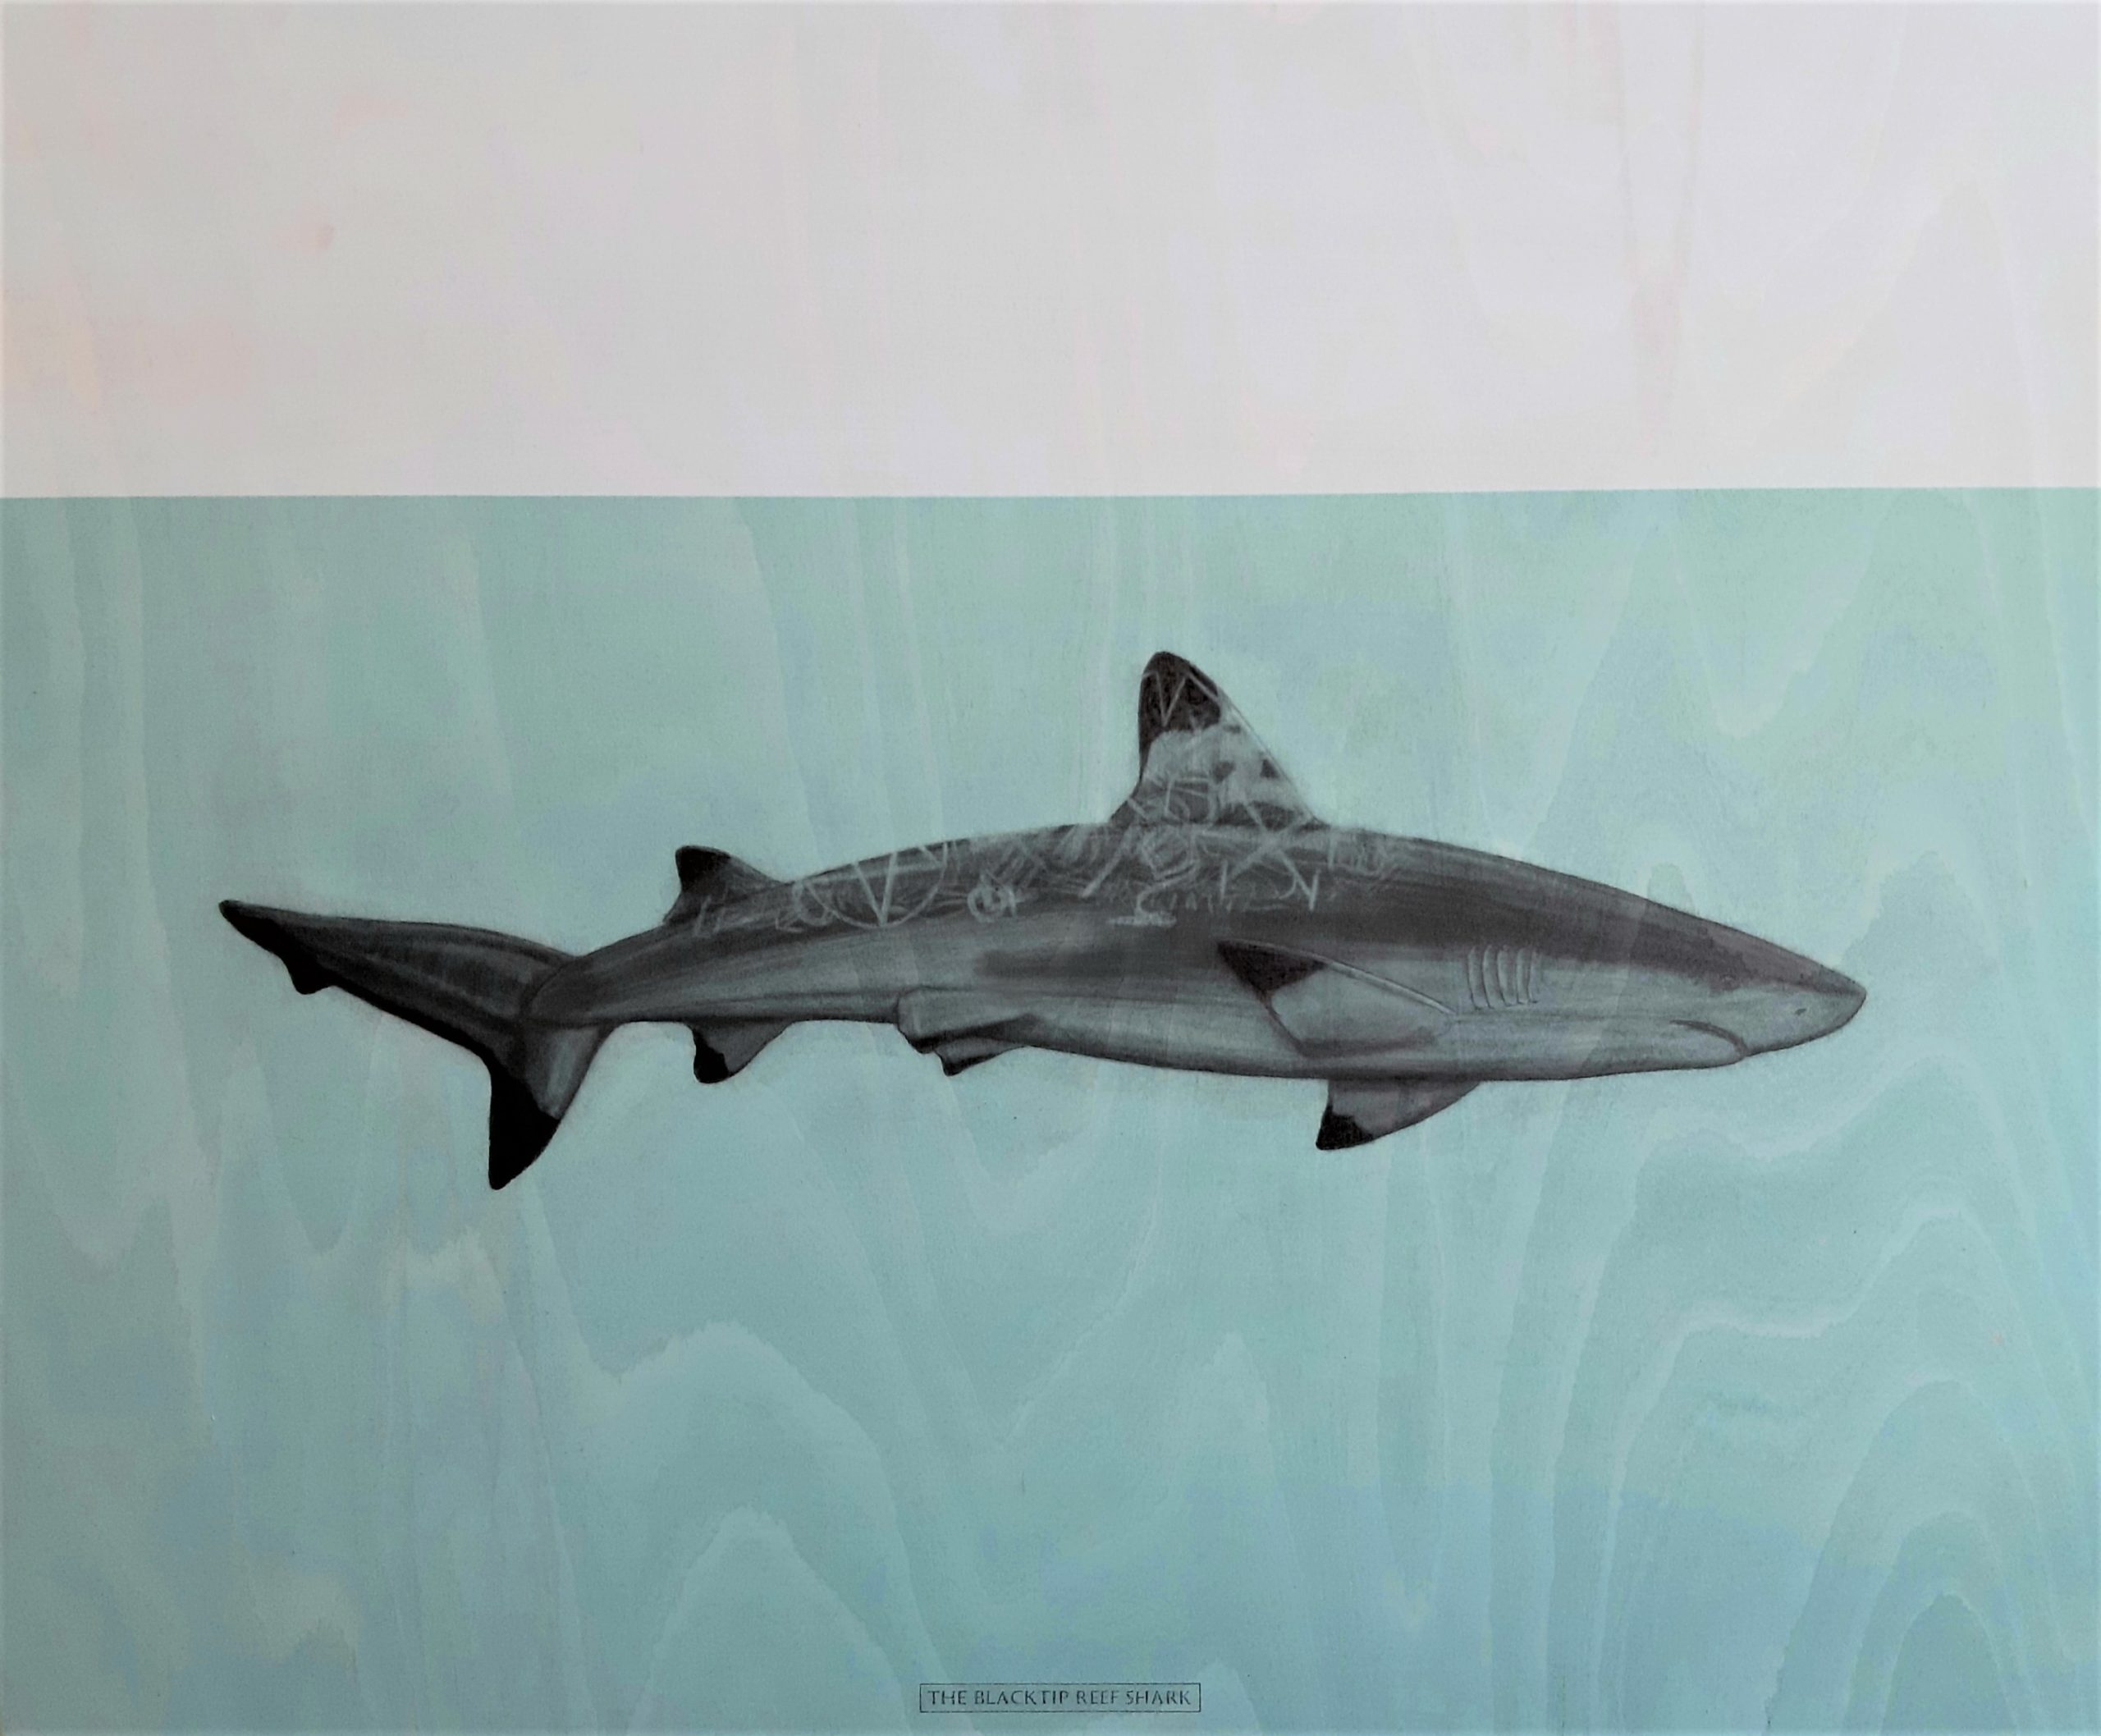 The Blacktip reef shark, 2020. Graphite and acrylic on plywood. Framed in white varnished obeche. 70 x 85 x 4 cm. £1,600